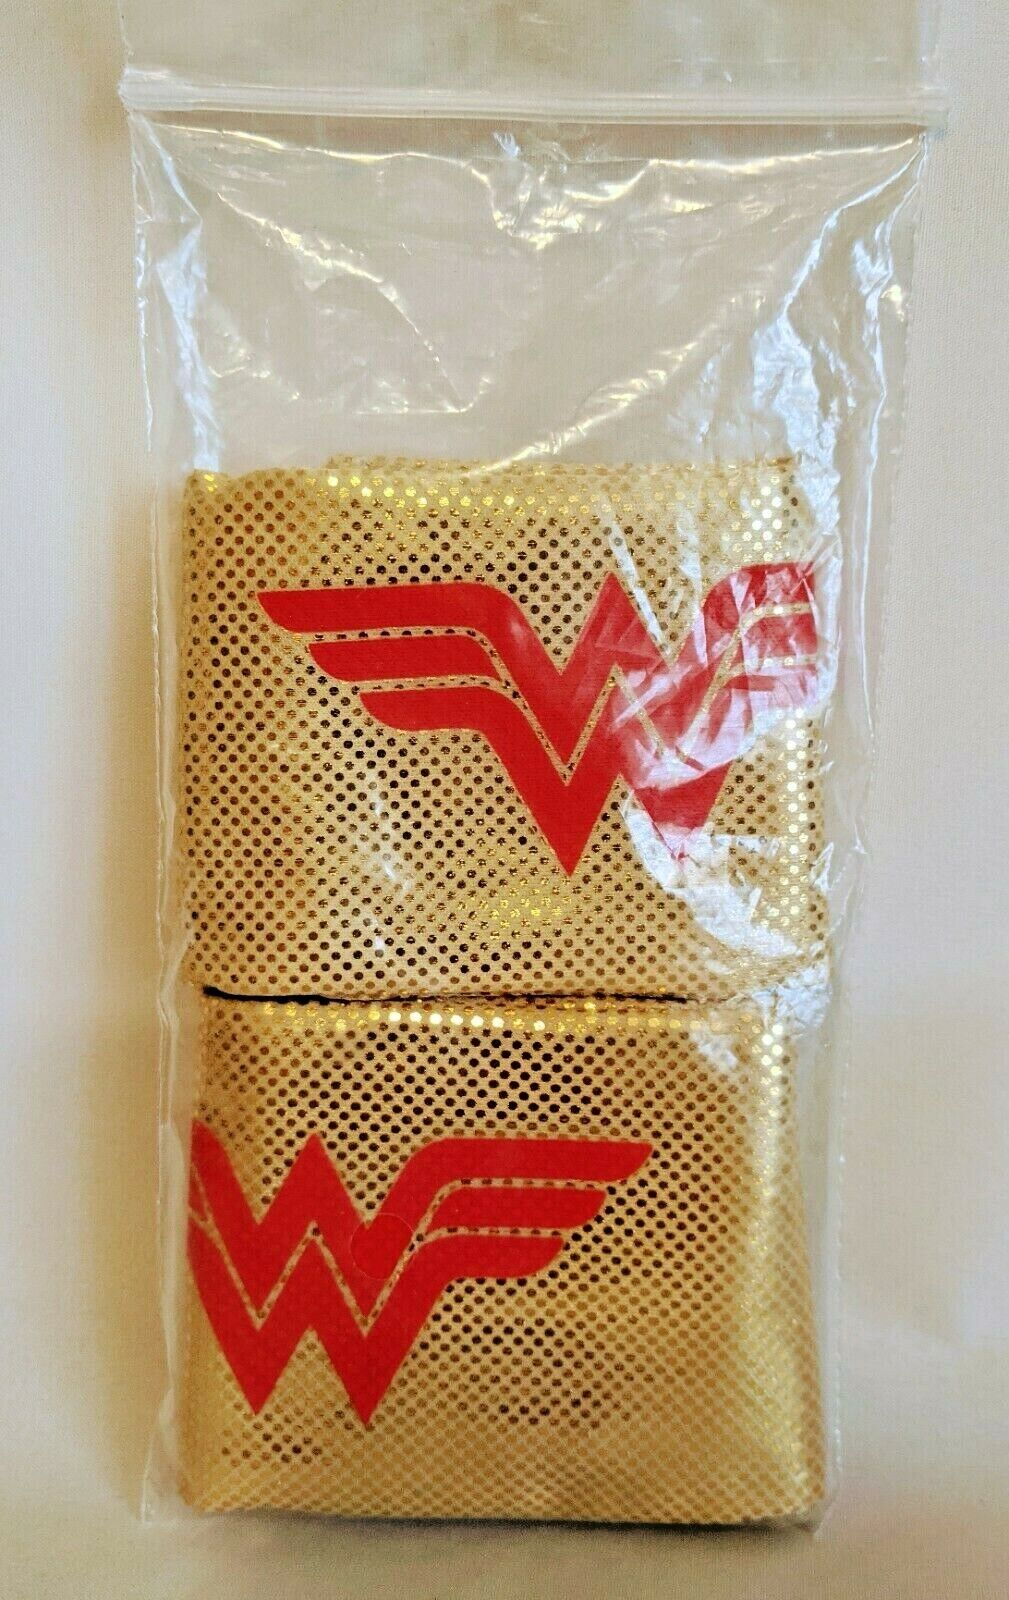 2 WONDER WOMAN Strap Wristbands, GOLD COLOR / FREE SHIPPING!!!